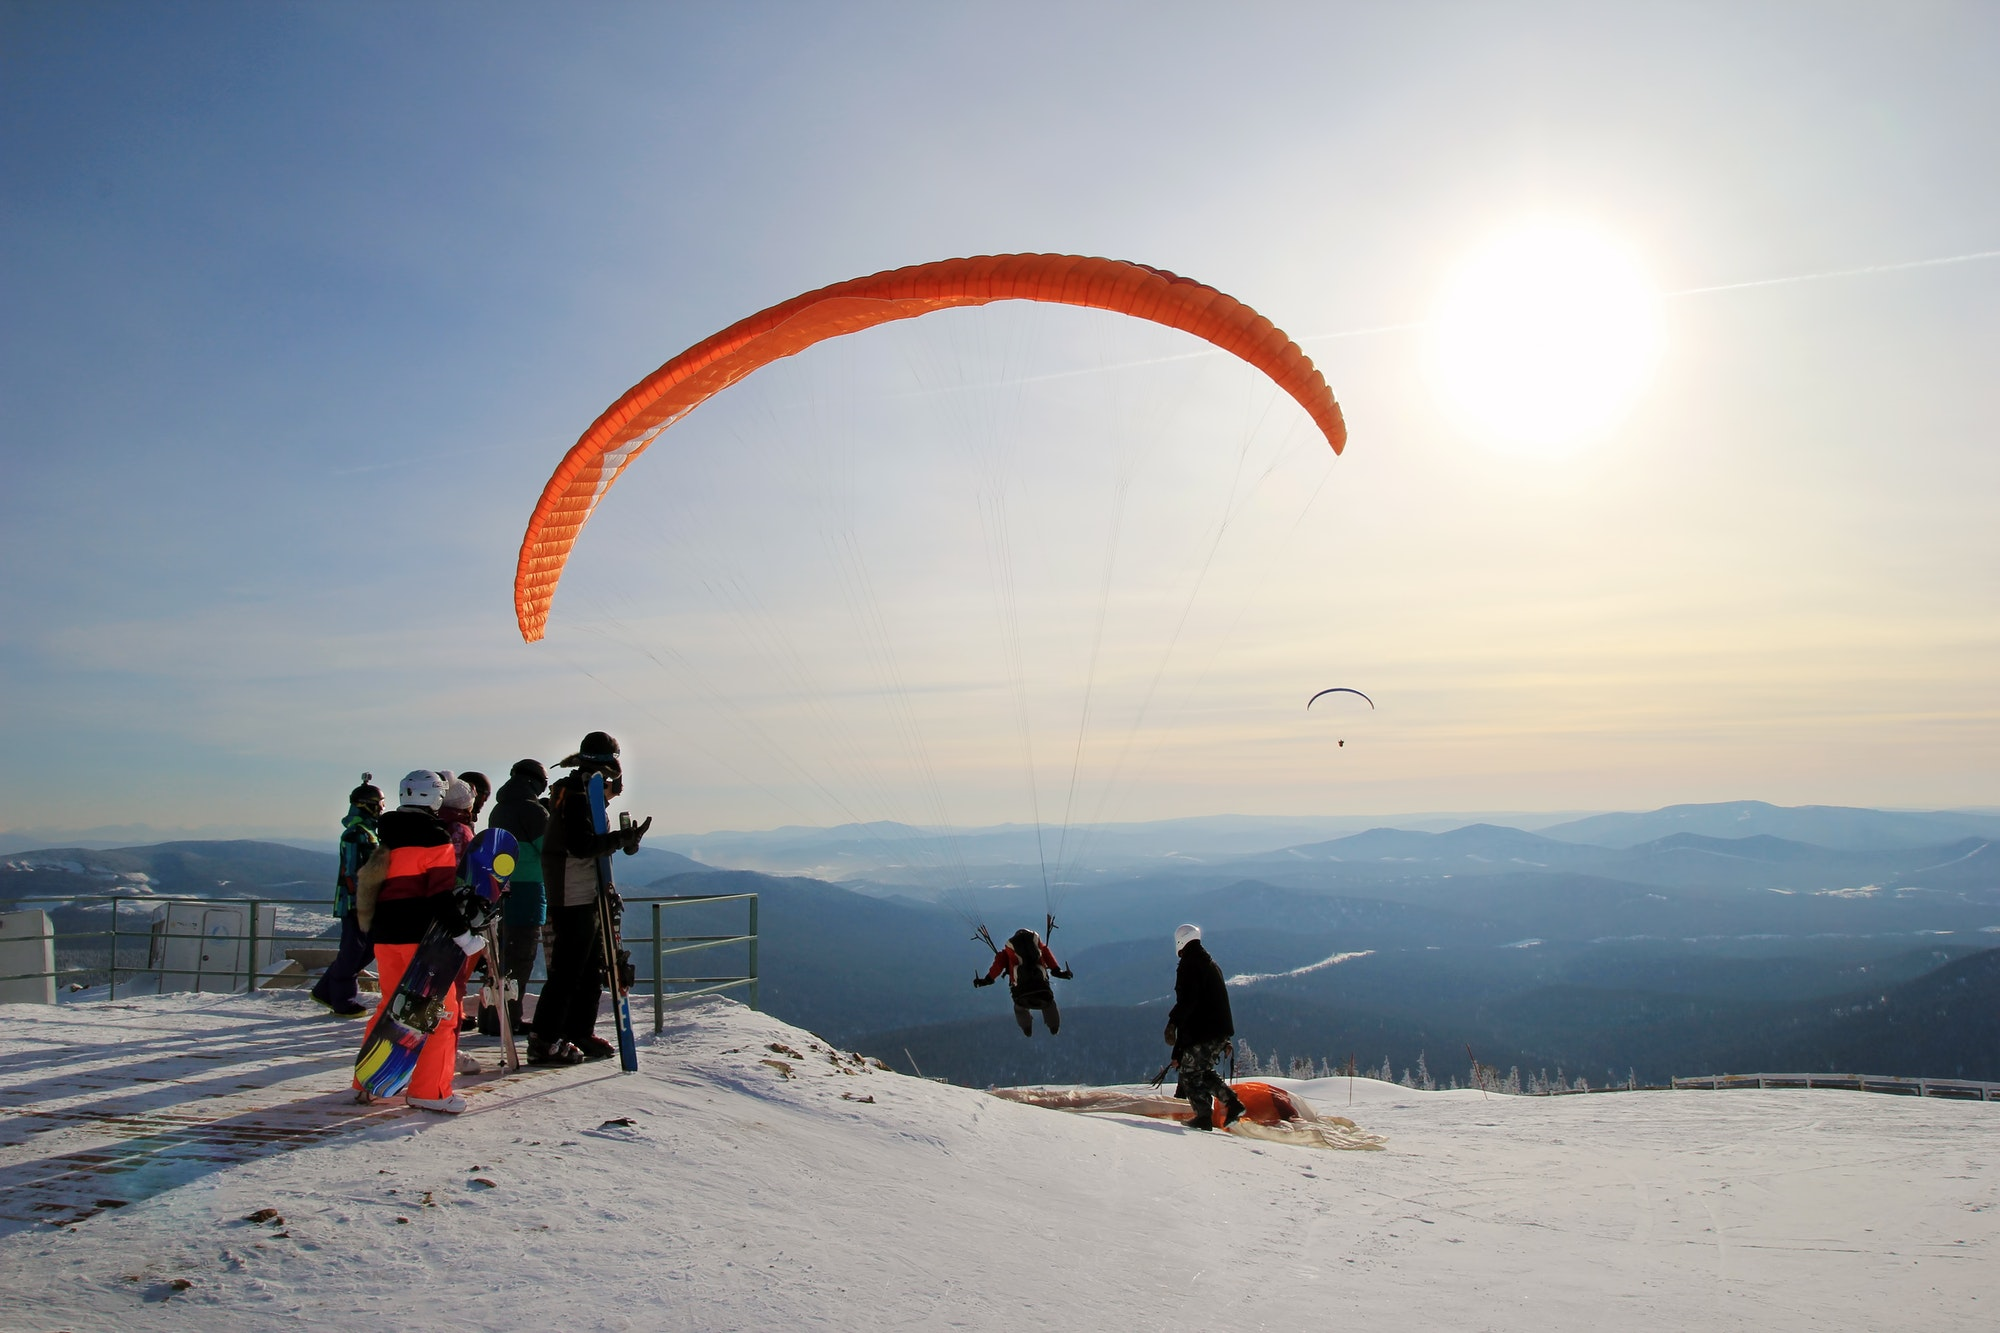 Travel to Sheregesh, Russia. Paraglider is taking off near to mountains. Winter landscape.